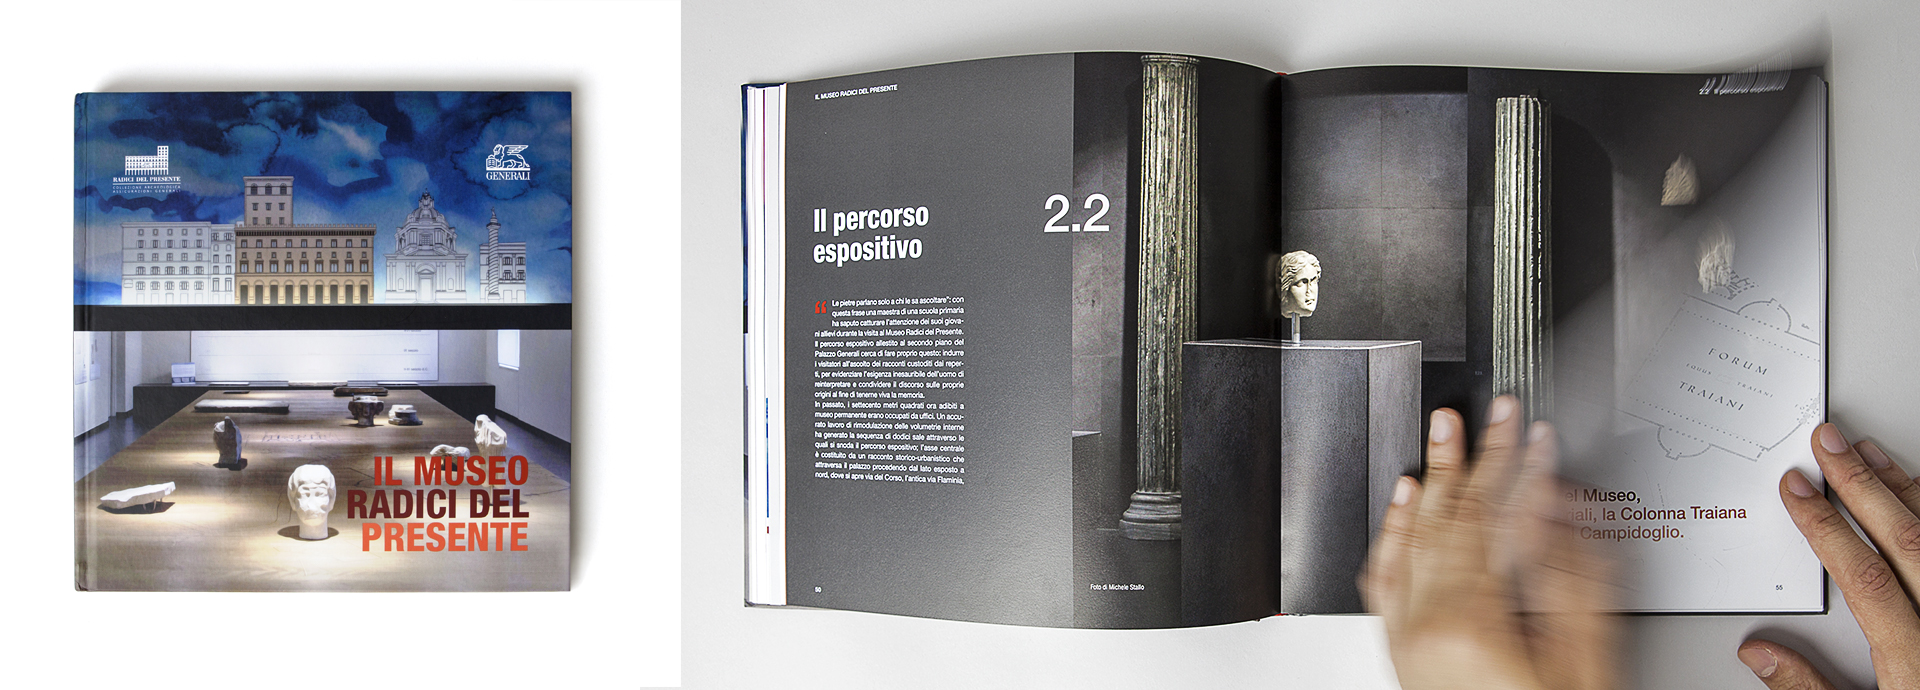 Generali - An editorial project for the archaeological Museum of Assicurazioni Generali